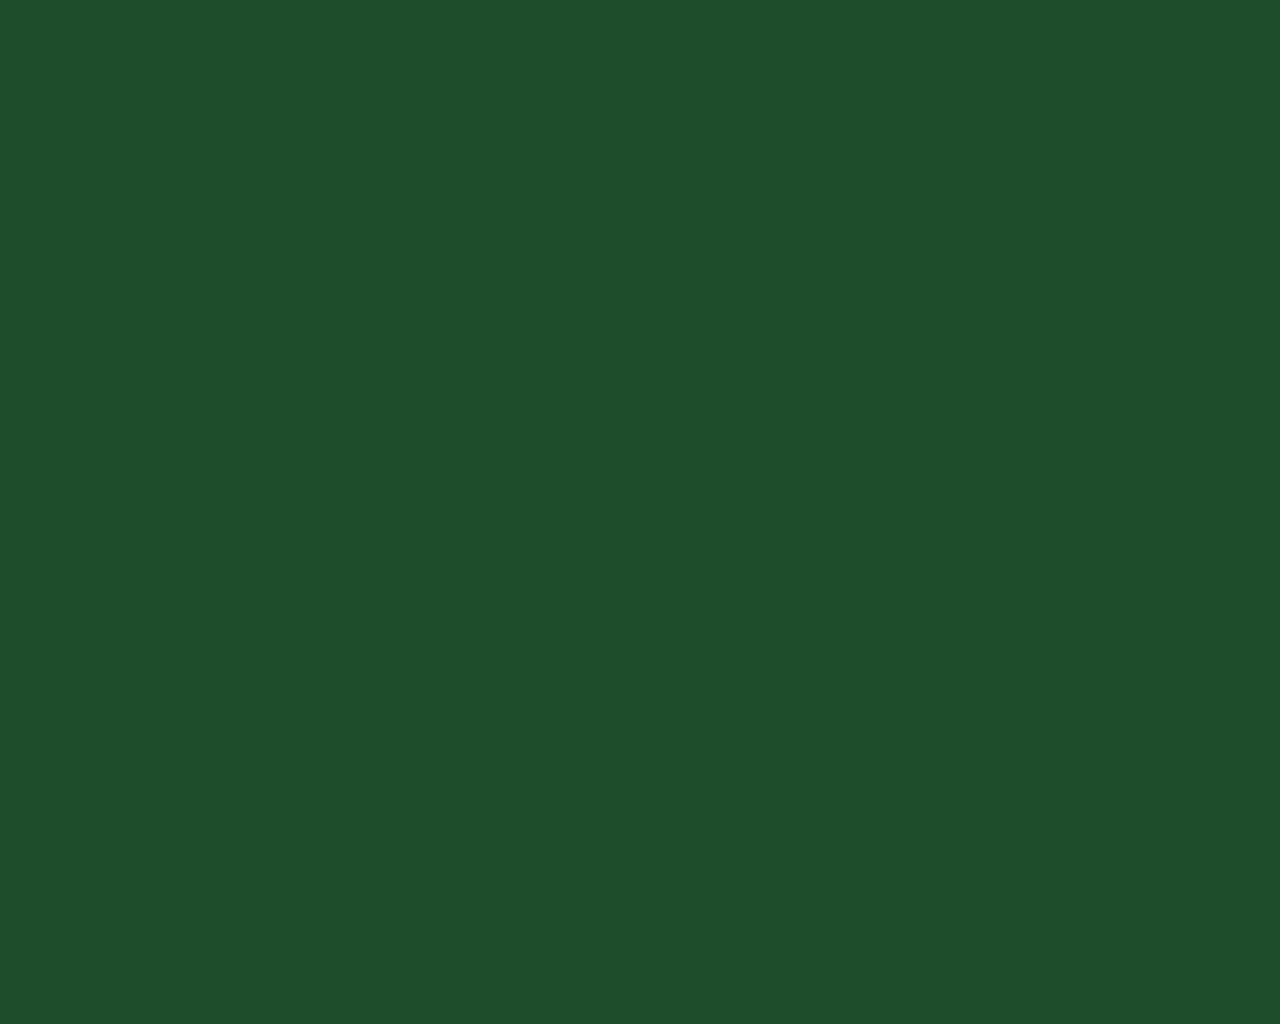 1280x1024 Cal Poly Green Solid Color Background